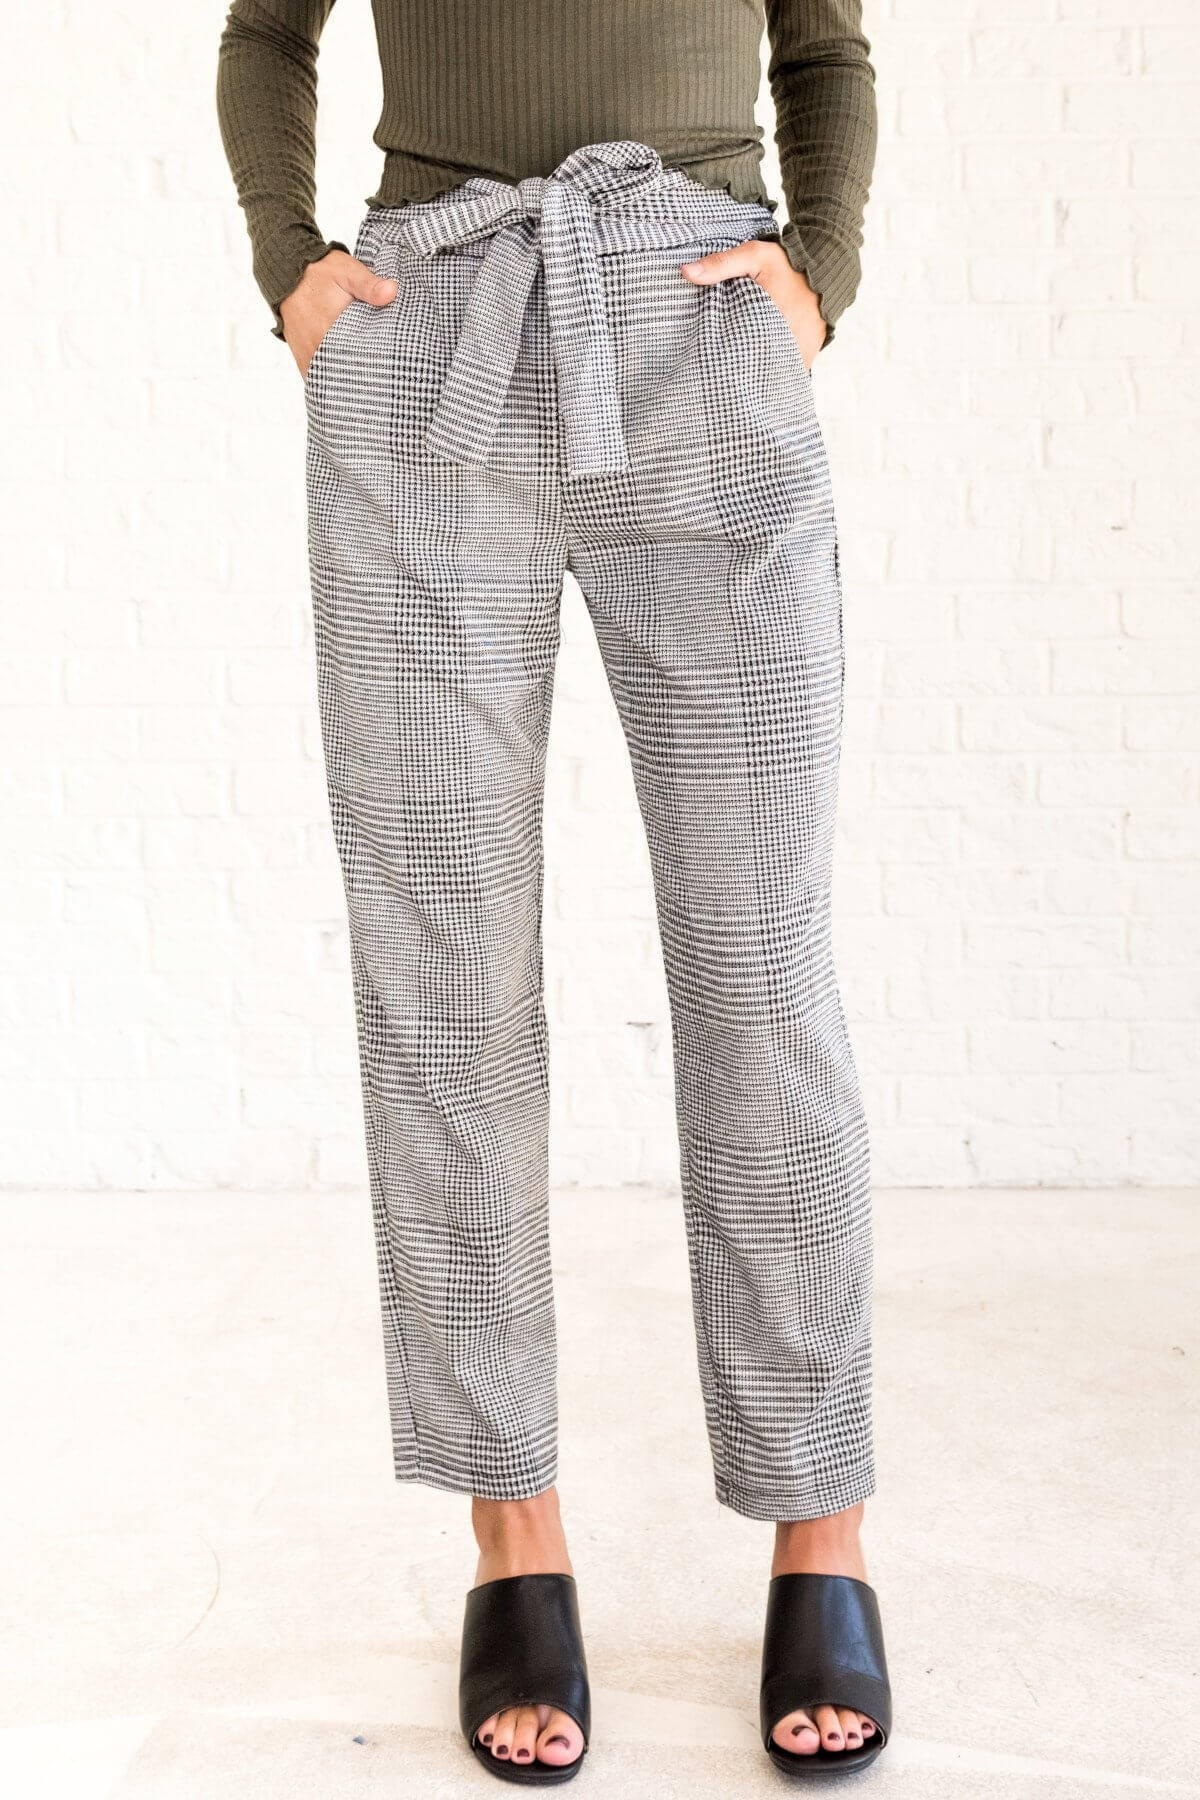 Black White Gray Plaid Pants with Bow Tie Front Business Casual for Women